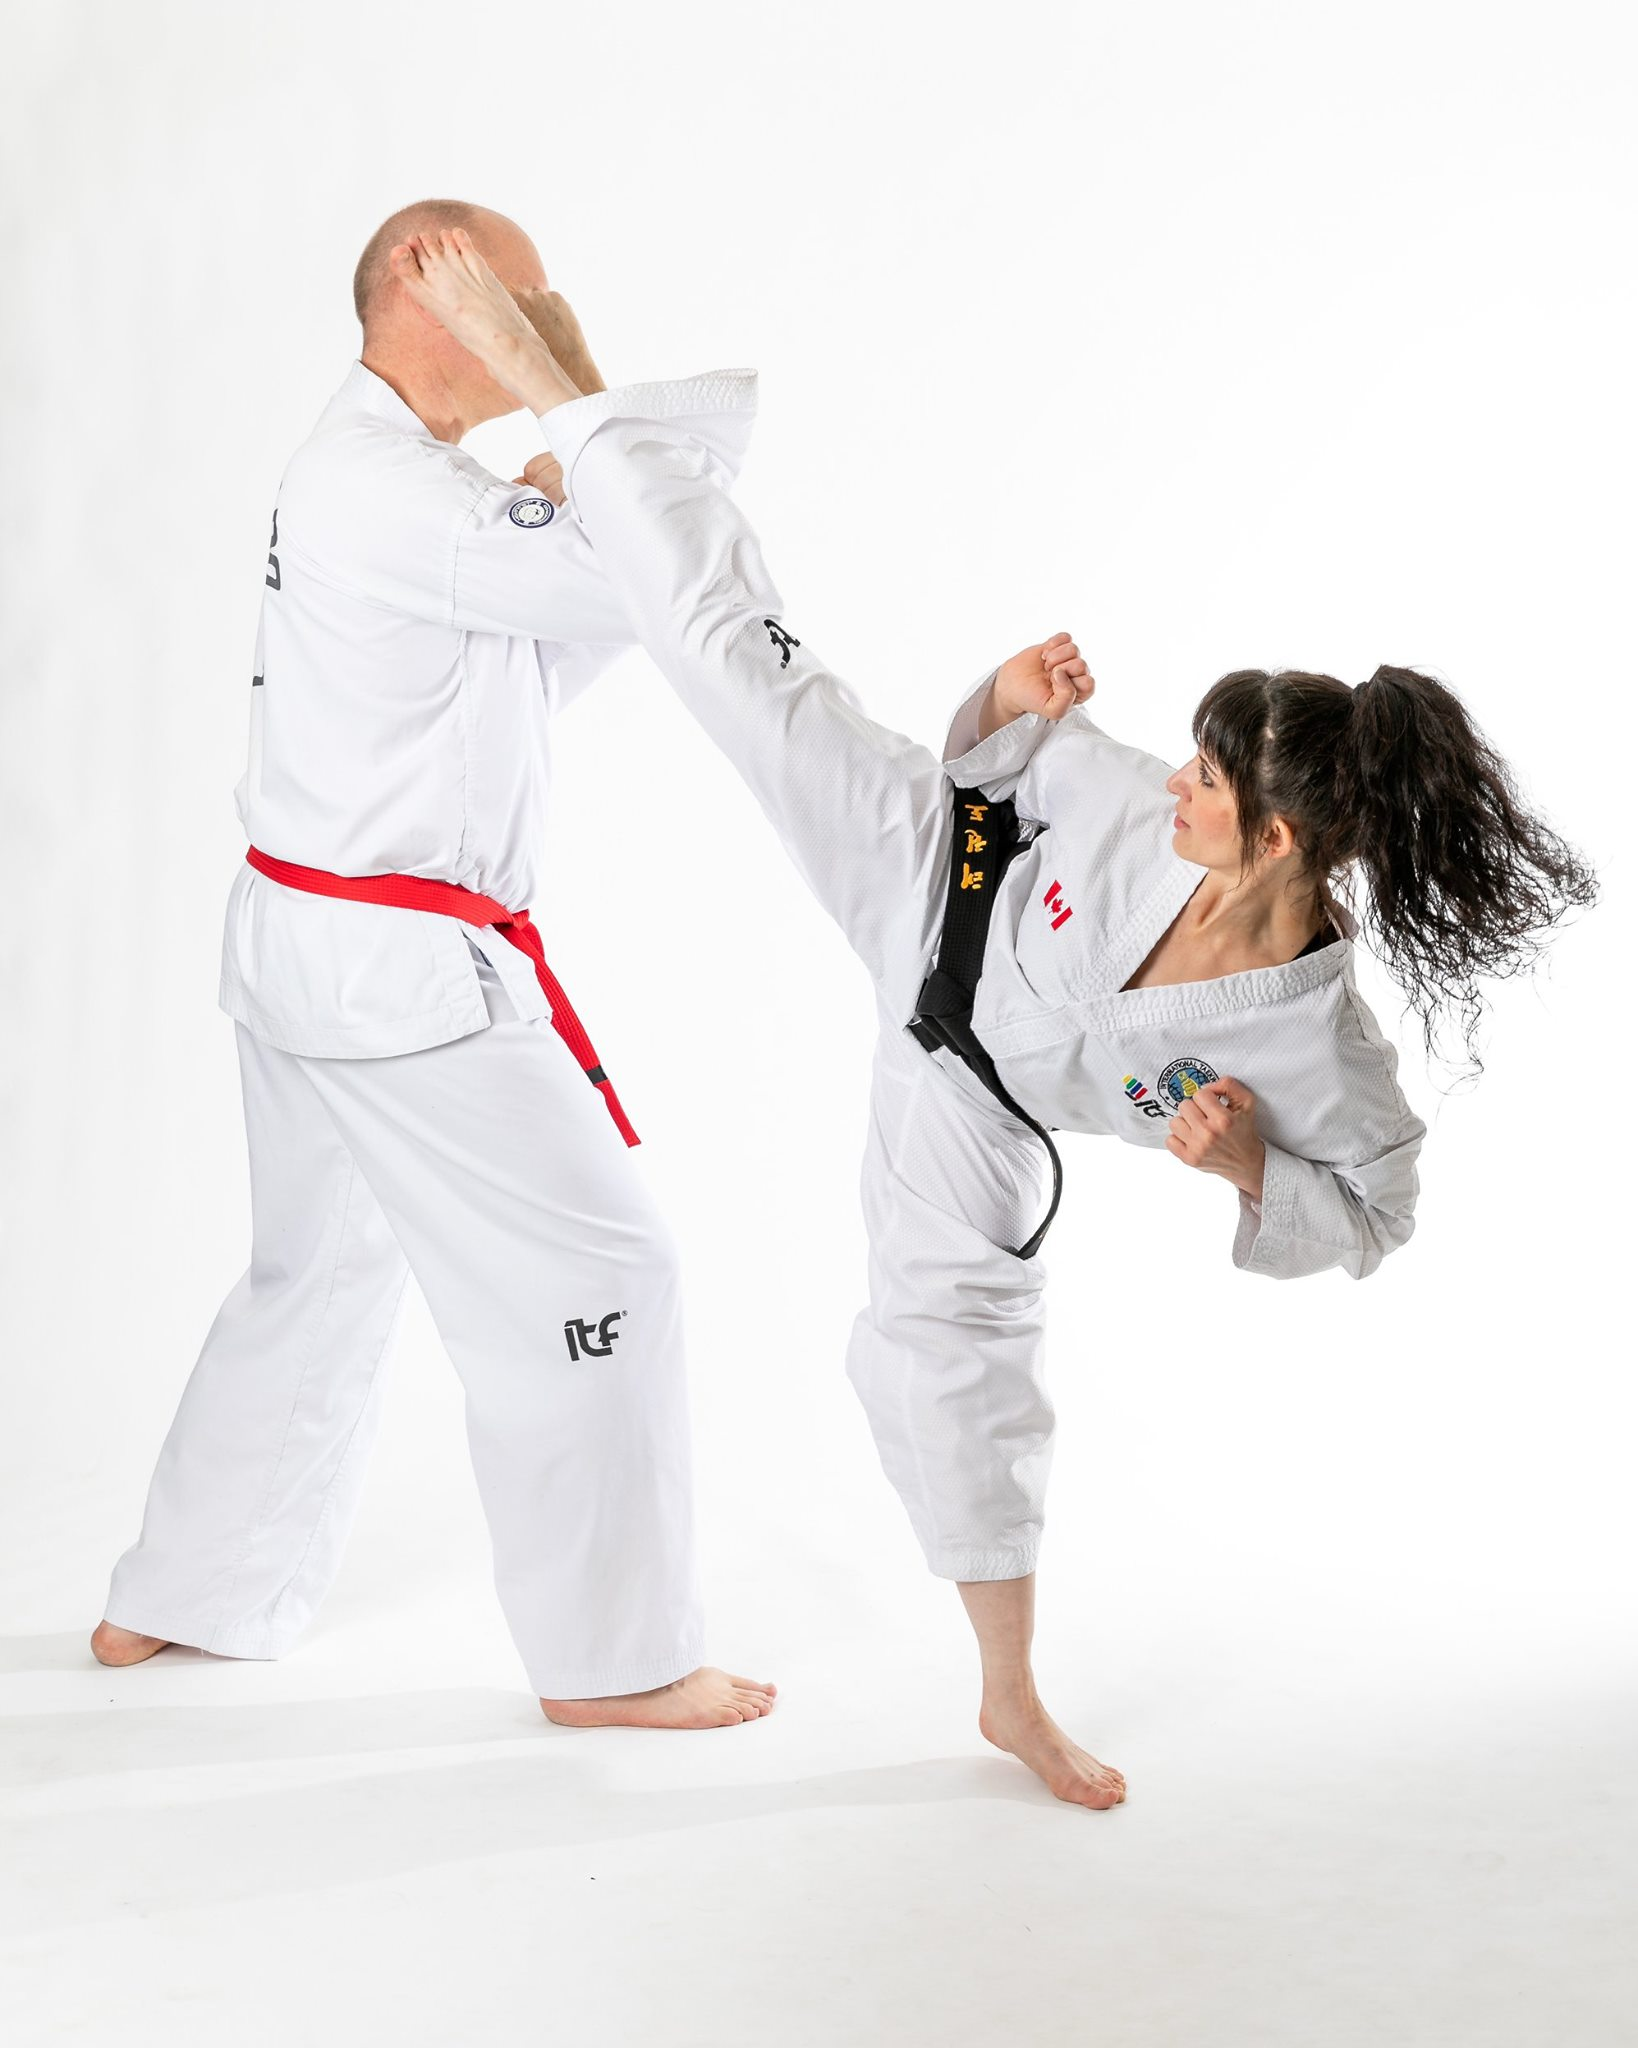 Aradia Fitness Calgary featured instructor Tatiana Vladimirovna demonstrating a Taekwan-do high kick